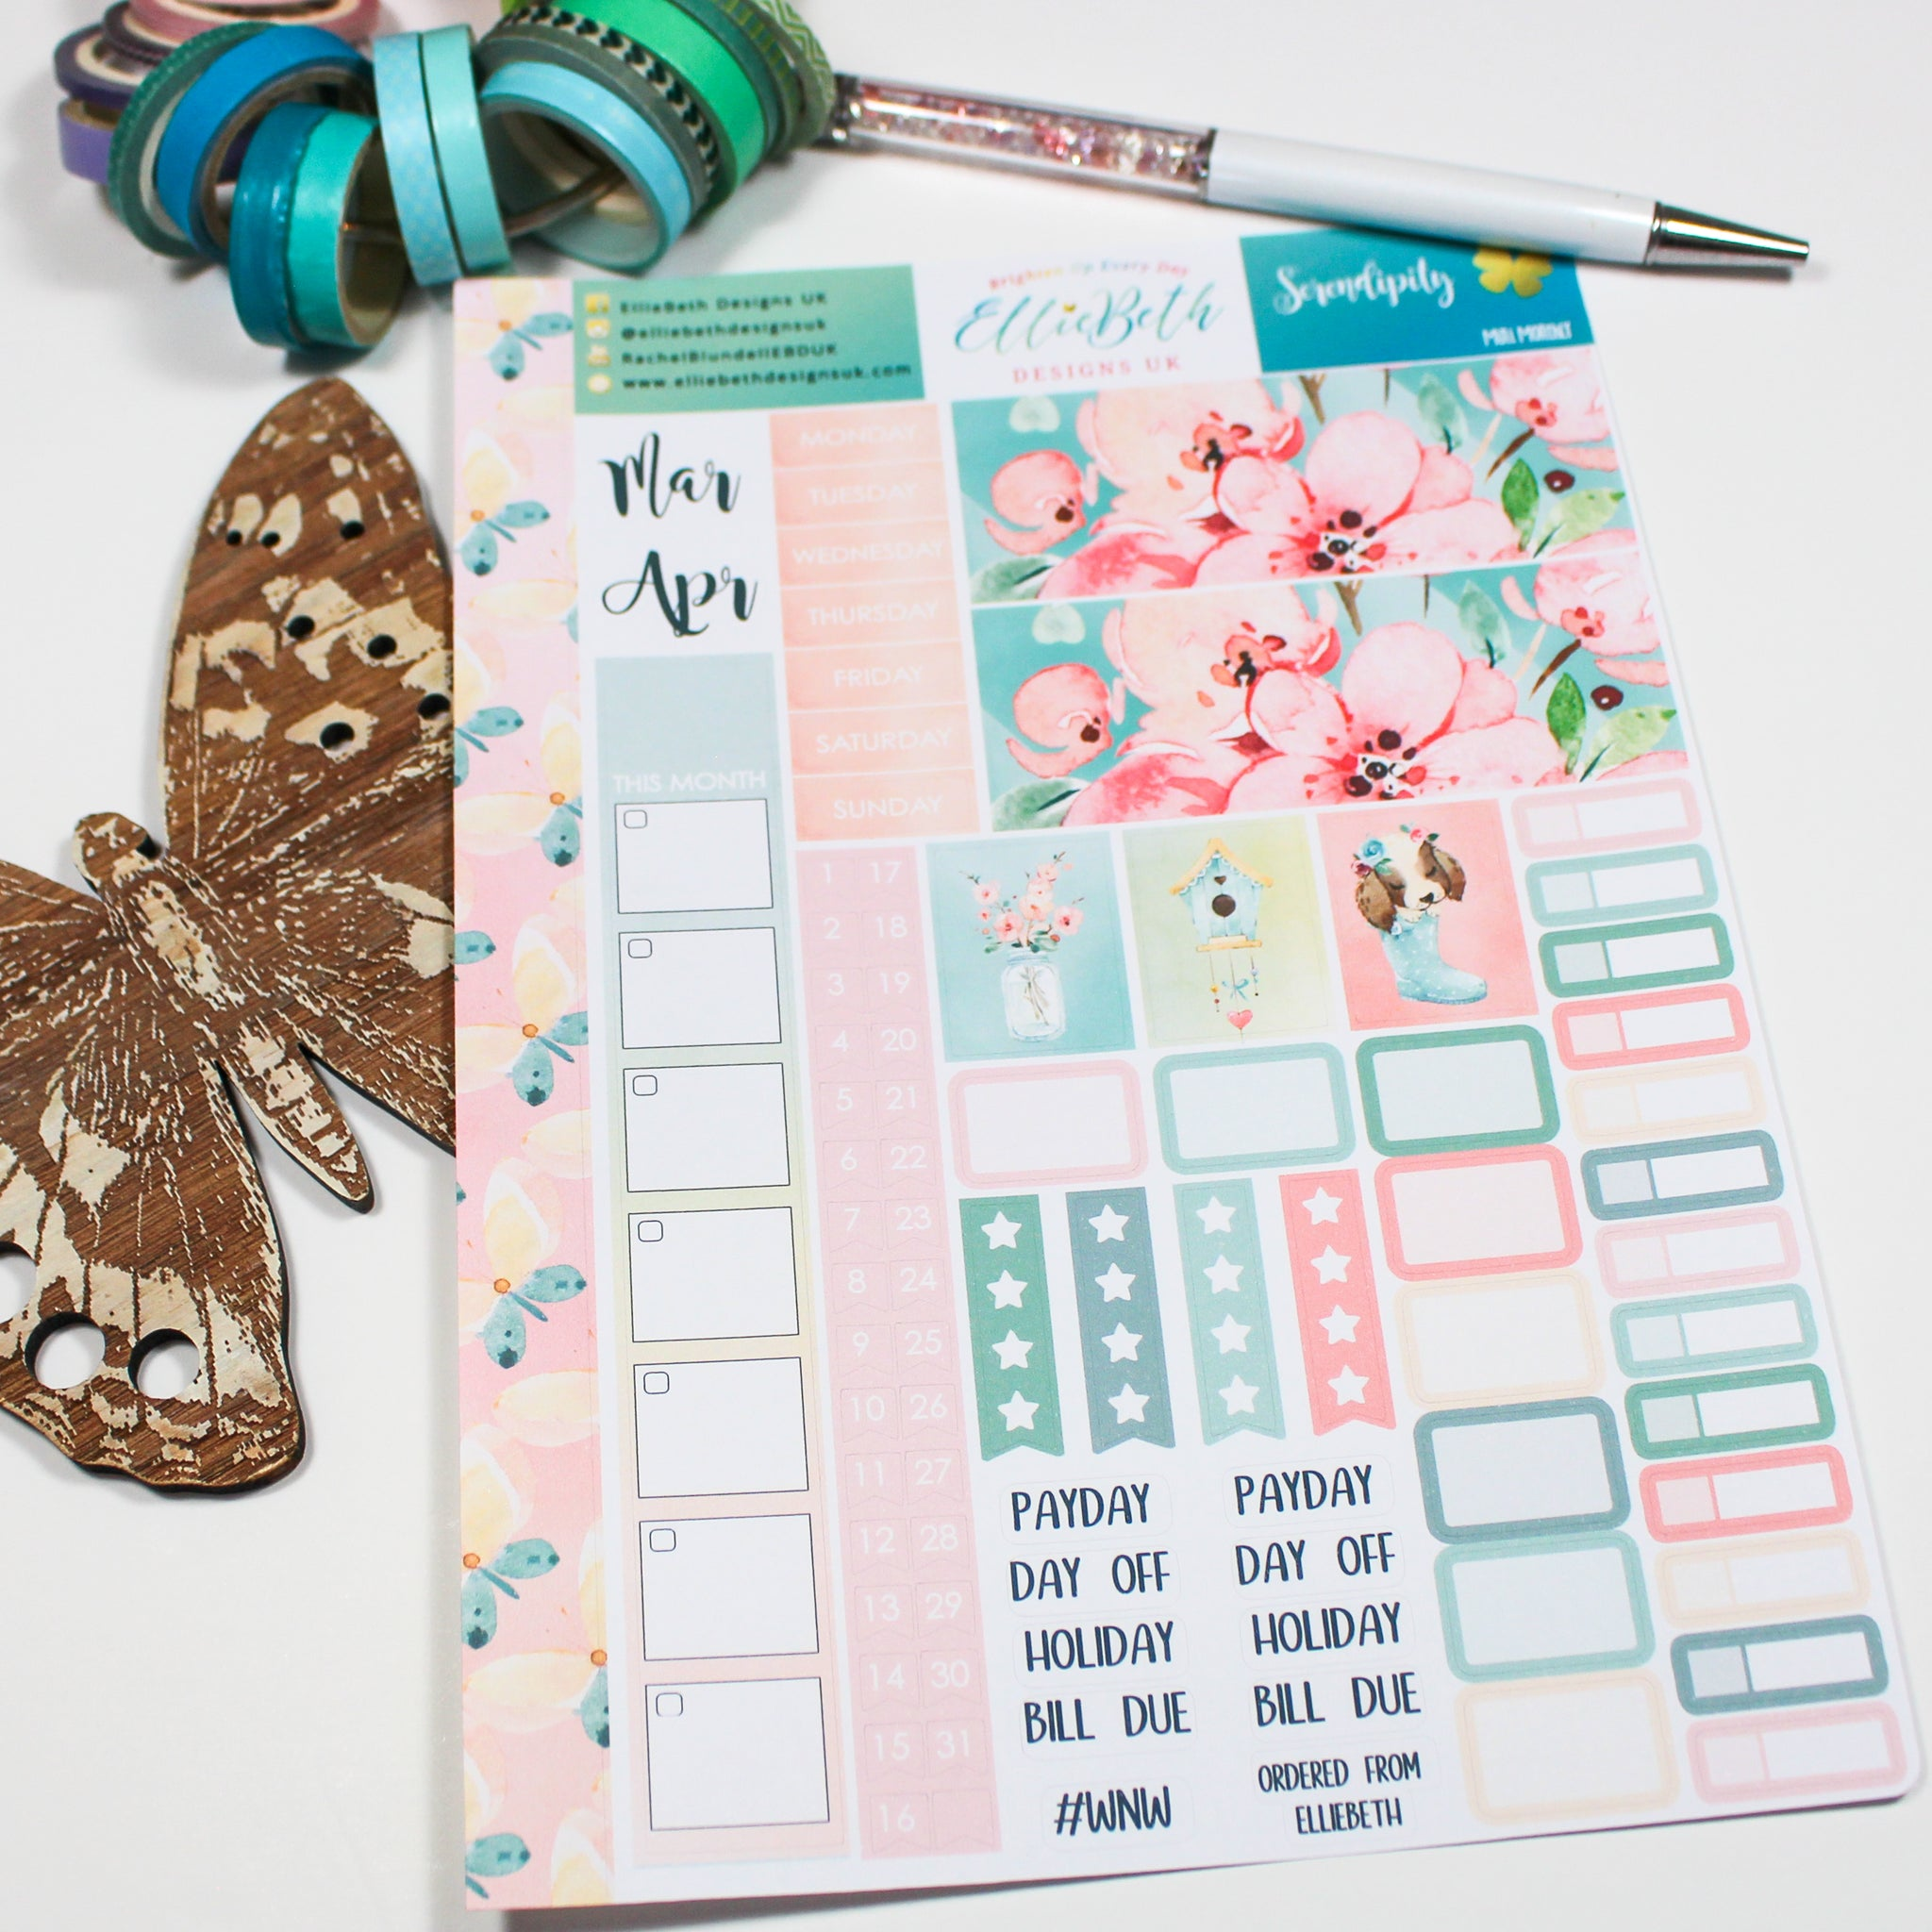 'Serendipity' - Mini Monthly (Hobonichi Weeks compatible) - A5 binder ready planner stickers